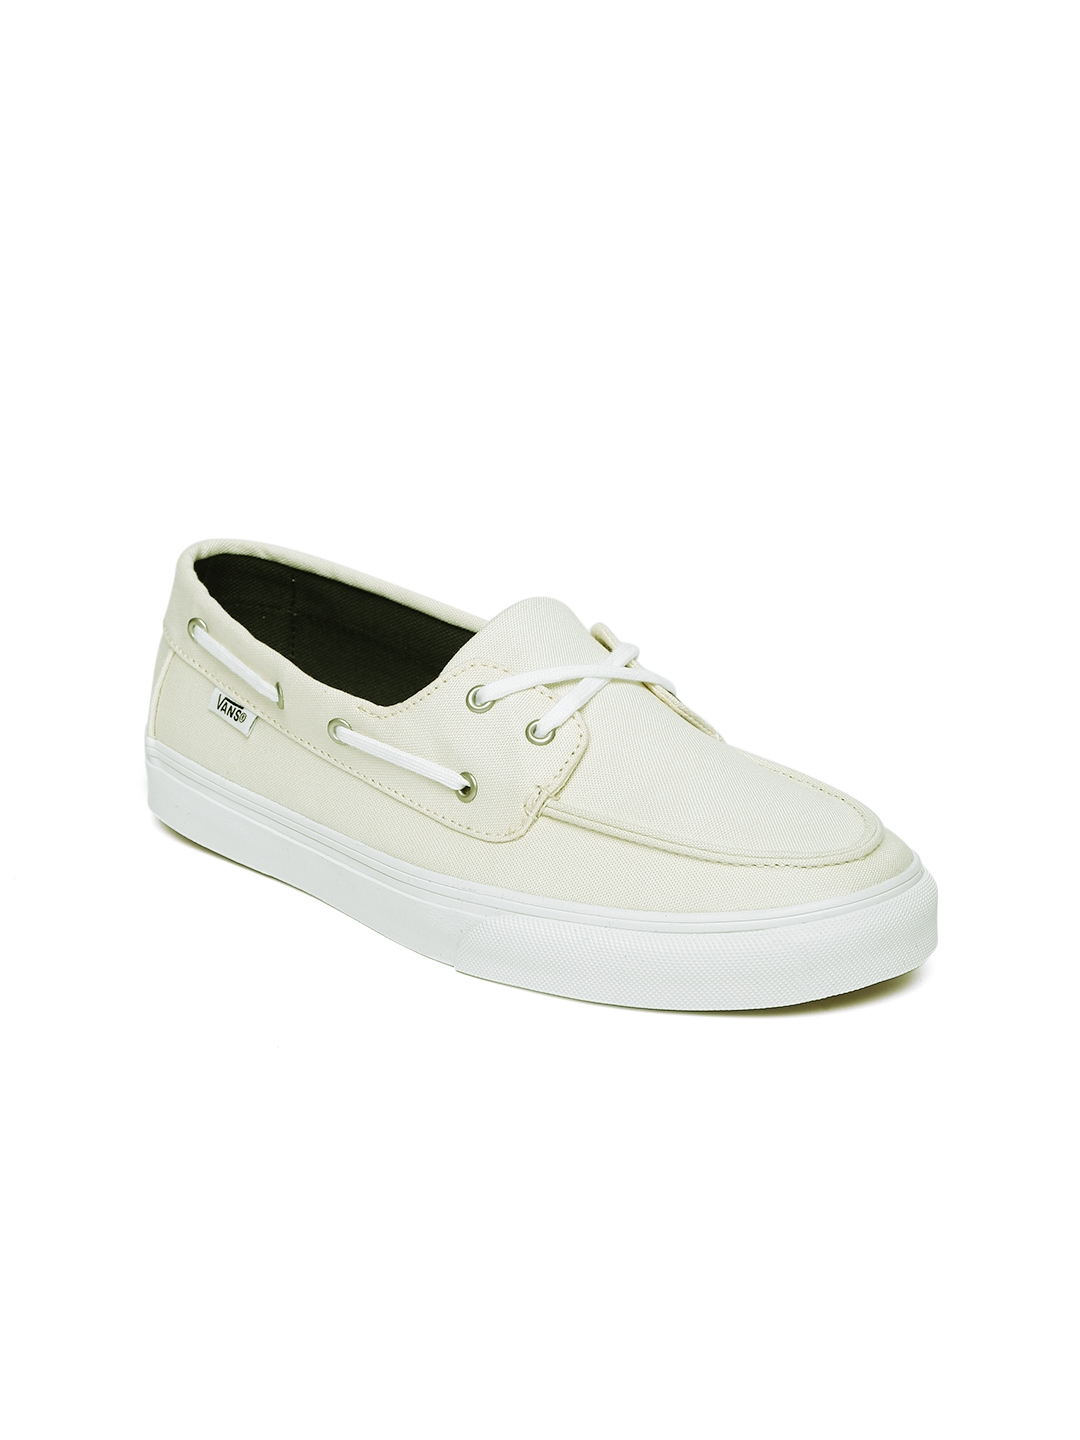 72e11083f2b3 Buy Vans Women Cream Coloured Boat Shoes - Casual Shoes for Women ...